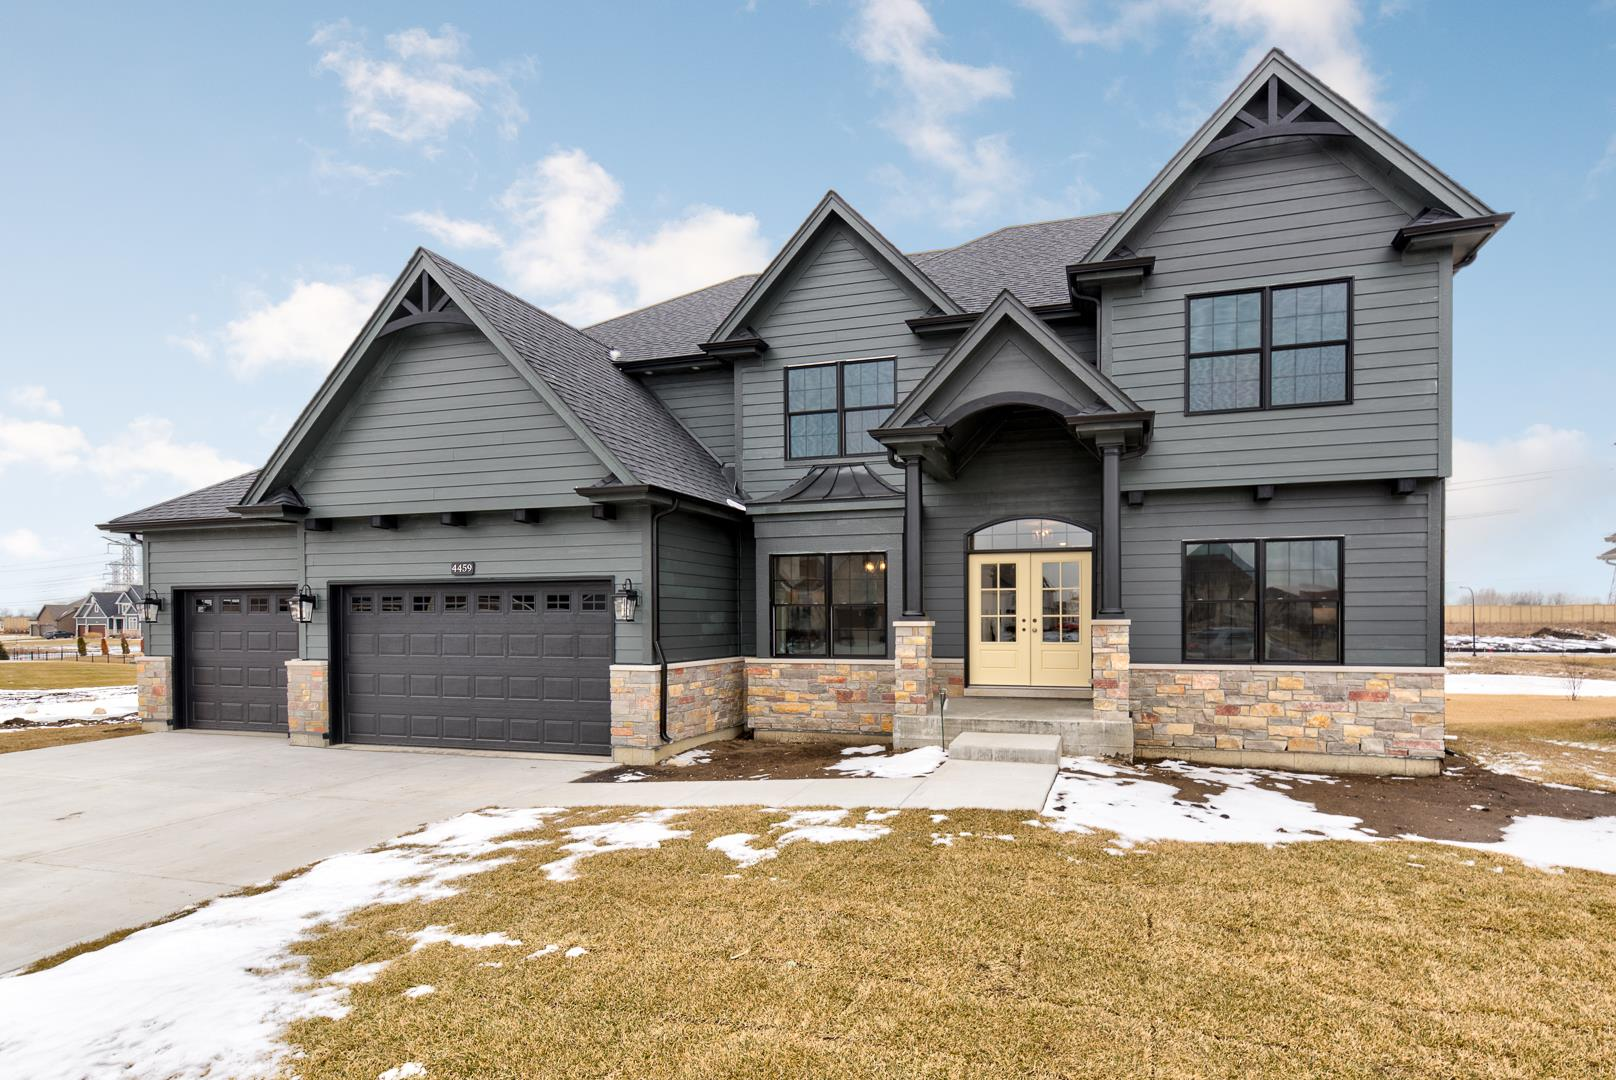 4207 Chinaberry Lane, Naperville, IL 60564 - #: 10963869